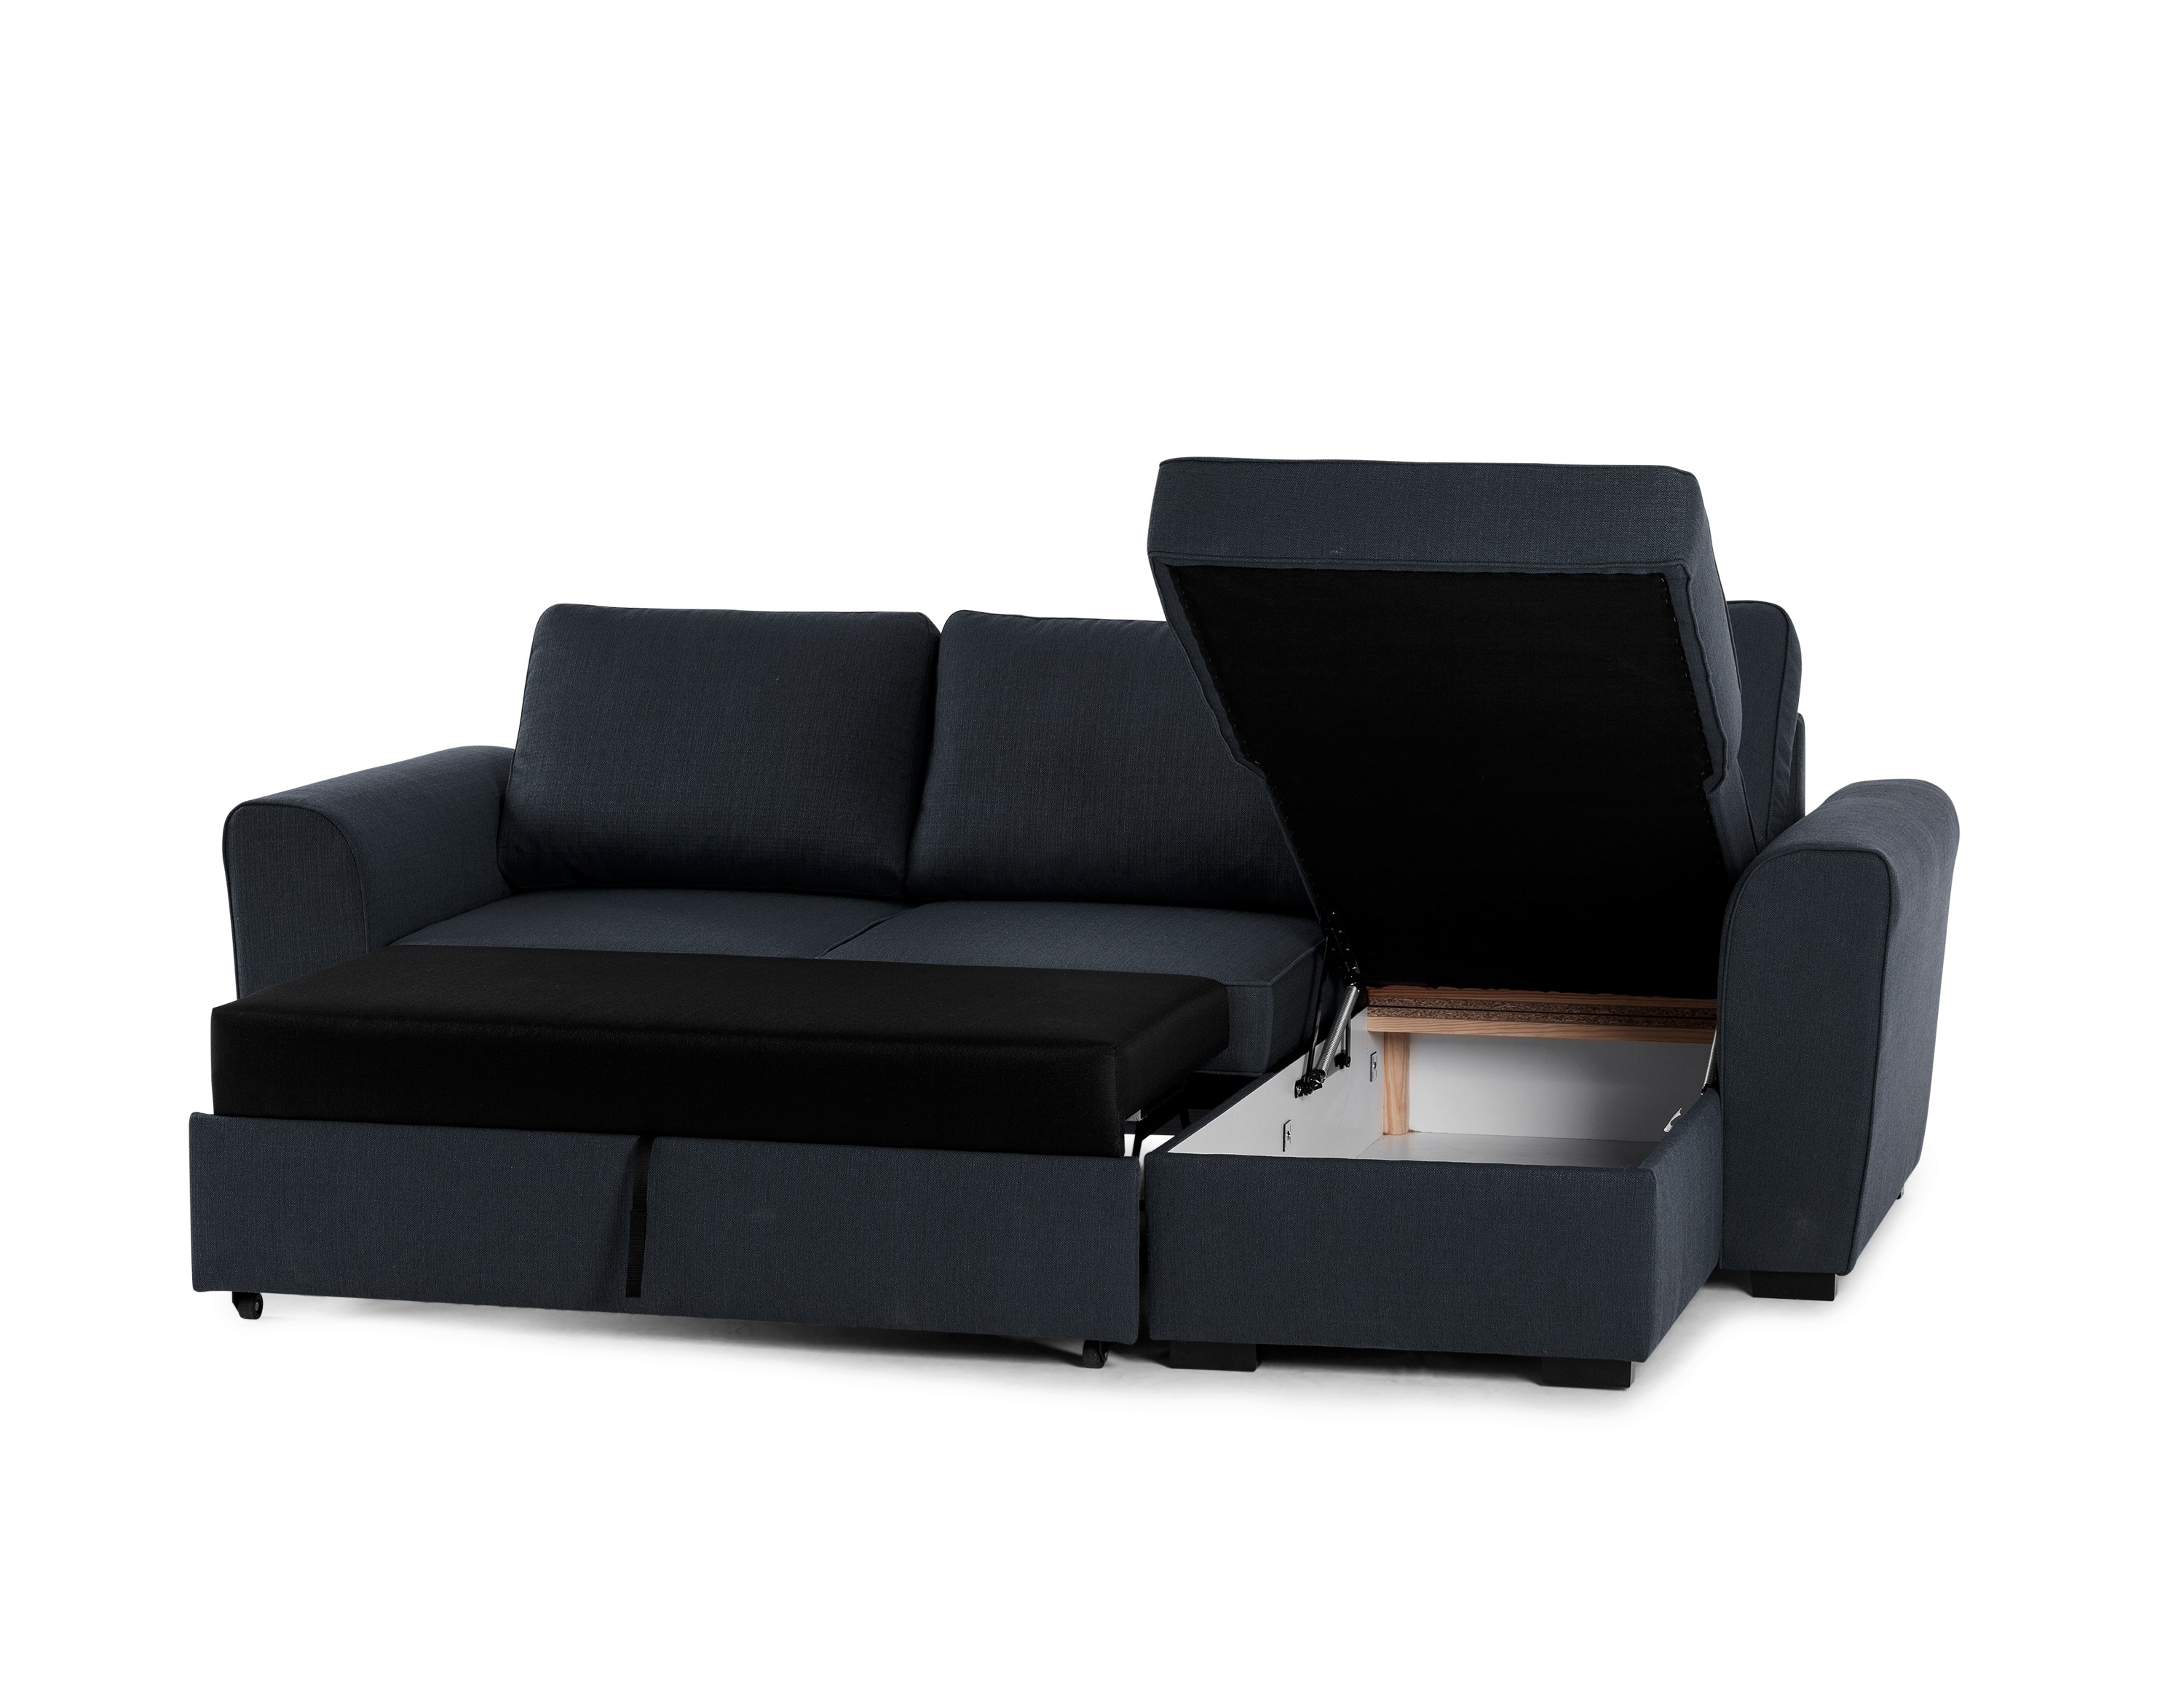 Sofa : Stunning Sectional Sofa Bed Apk 27801 2S 10X8 Cropafhs Pdp With Famous 10X8 Sectional Sofas (View 20 of 20)